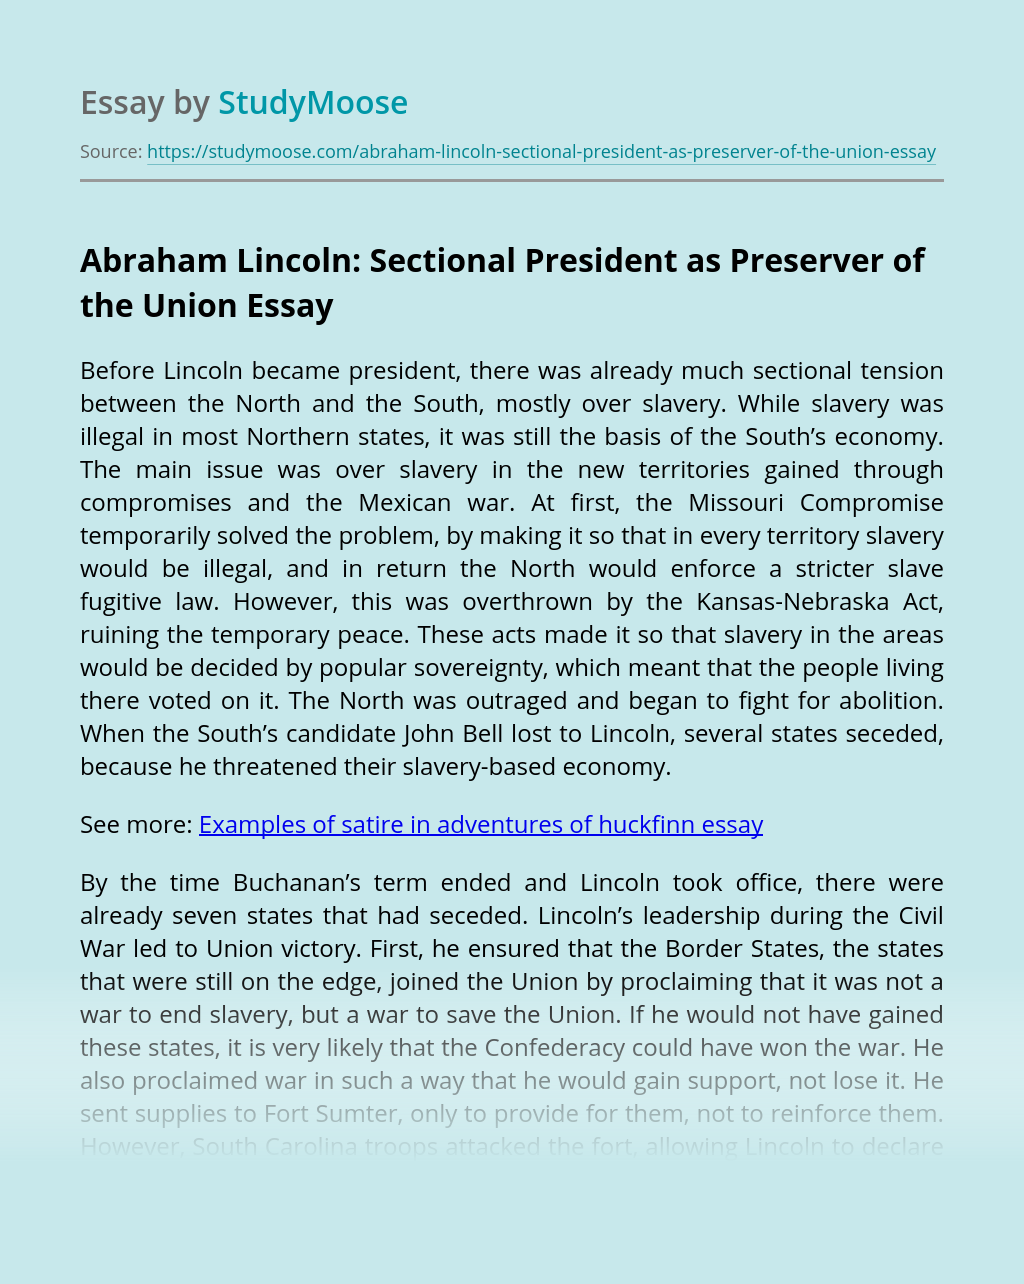 Abraham Lincoln: Sectional President as Preserver of the Union